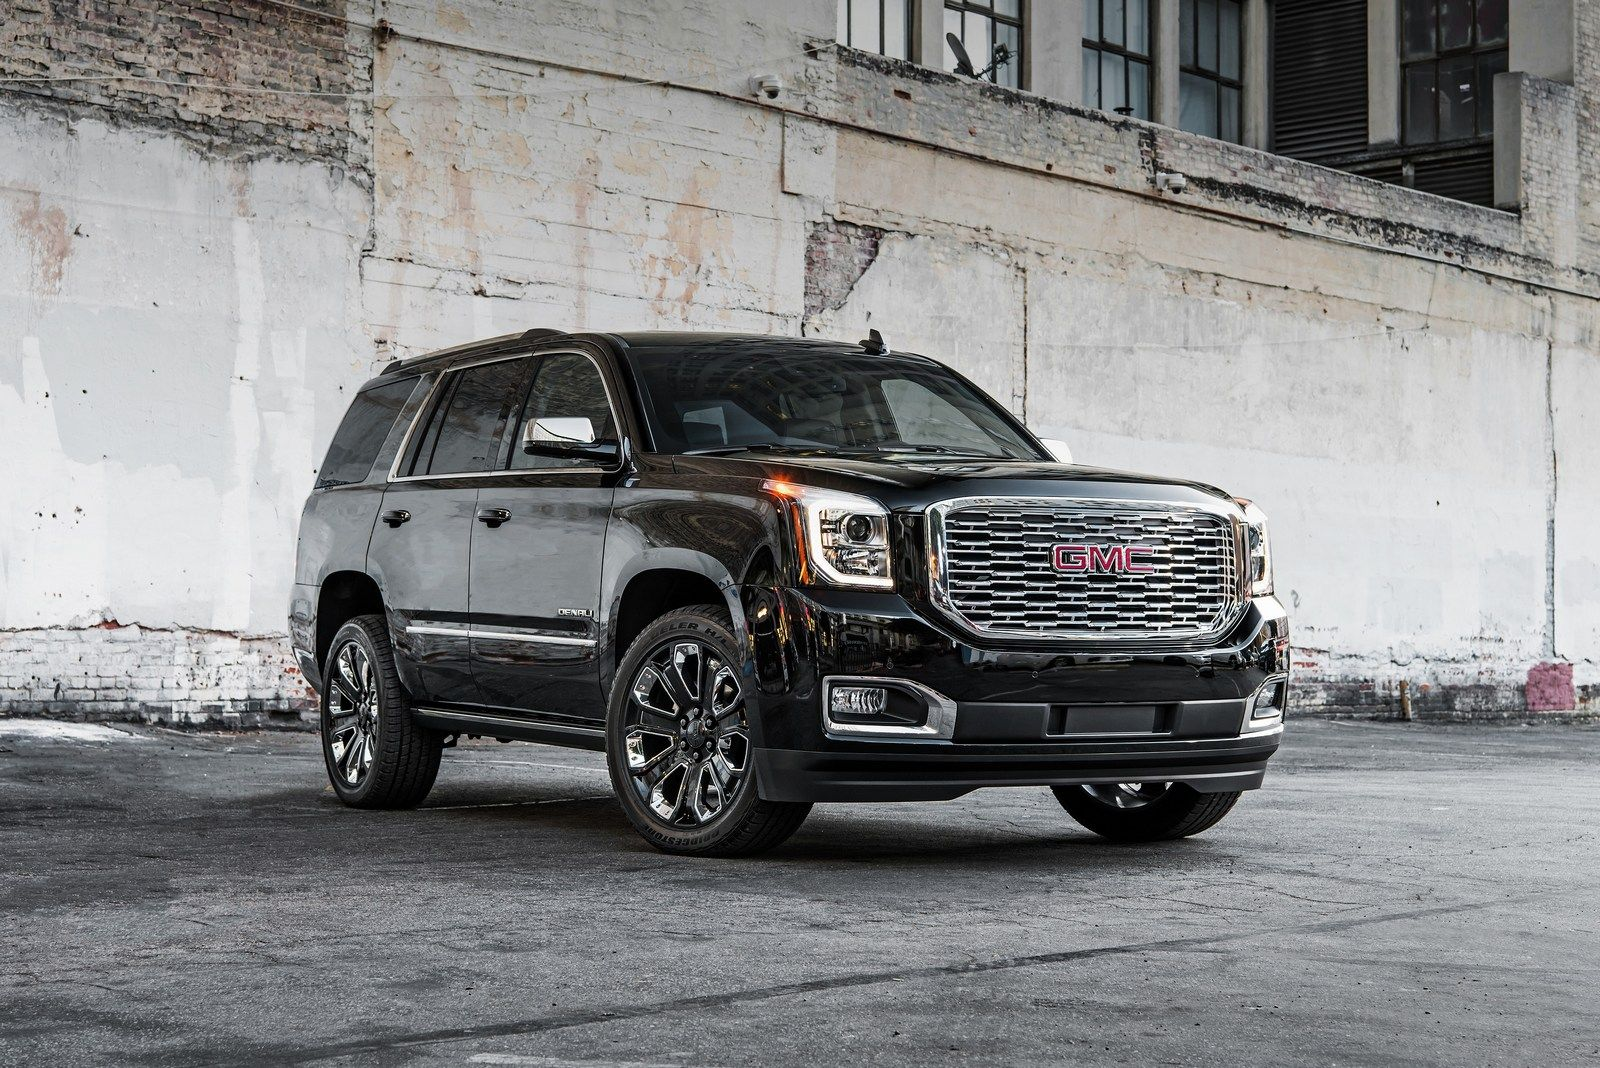 2018 Gmc Yukon Denali Ultimate Black Edition Brings The Bling To La Gmc Yukon Denali Gmc Denali Yukon Denali